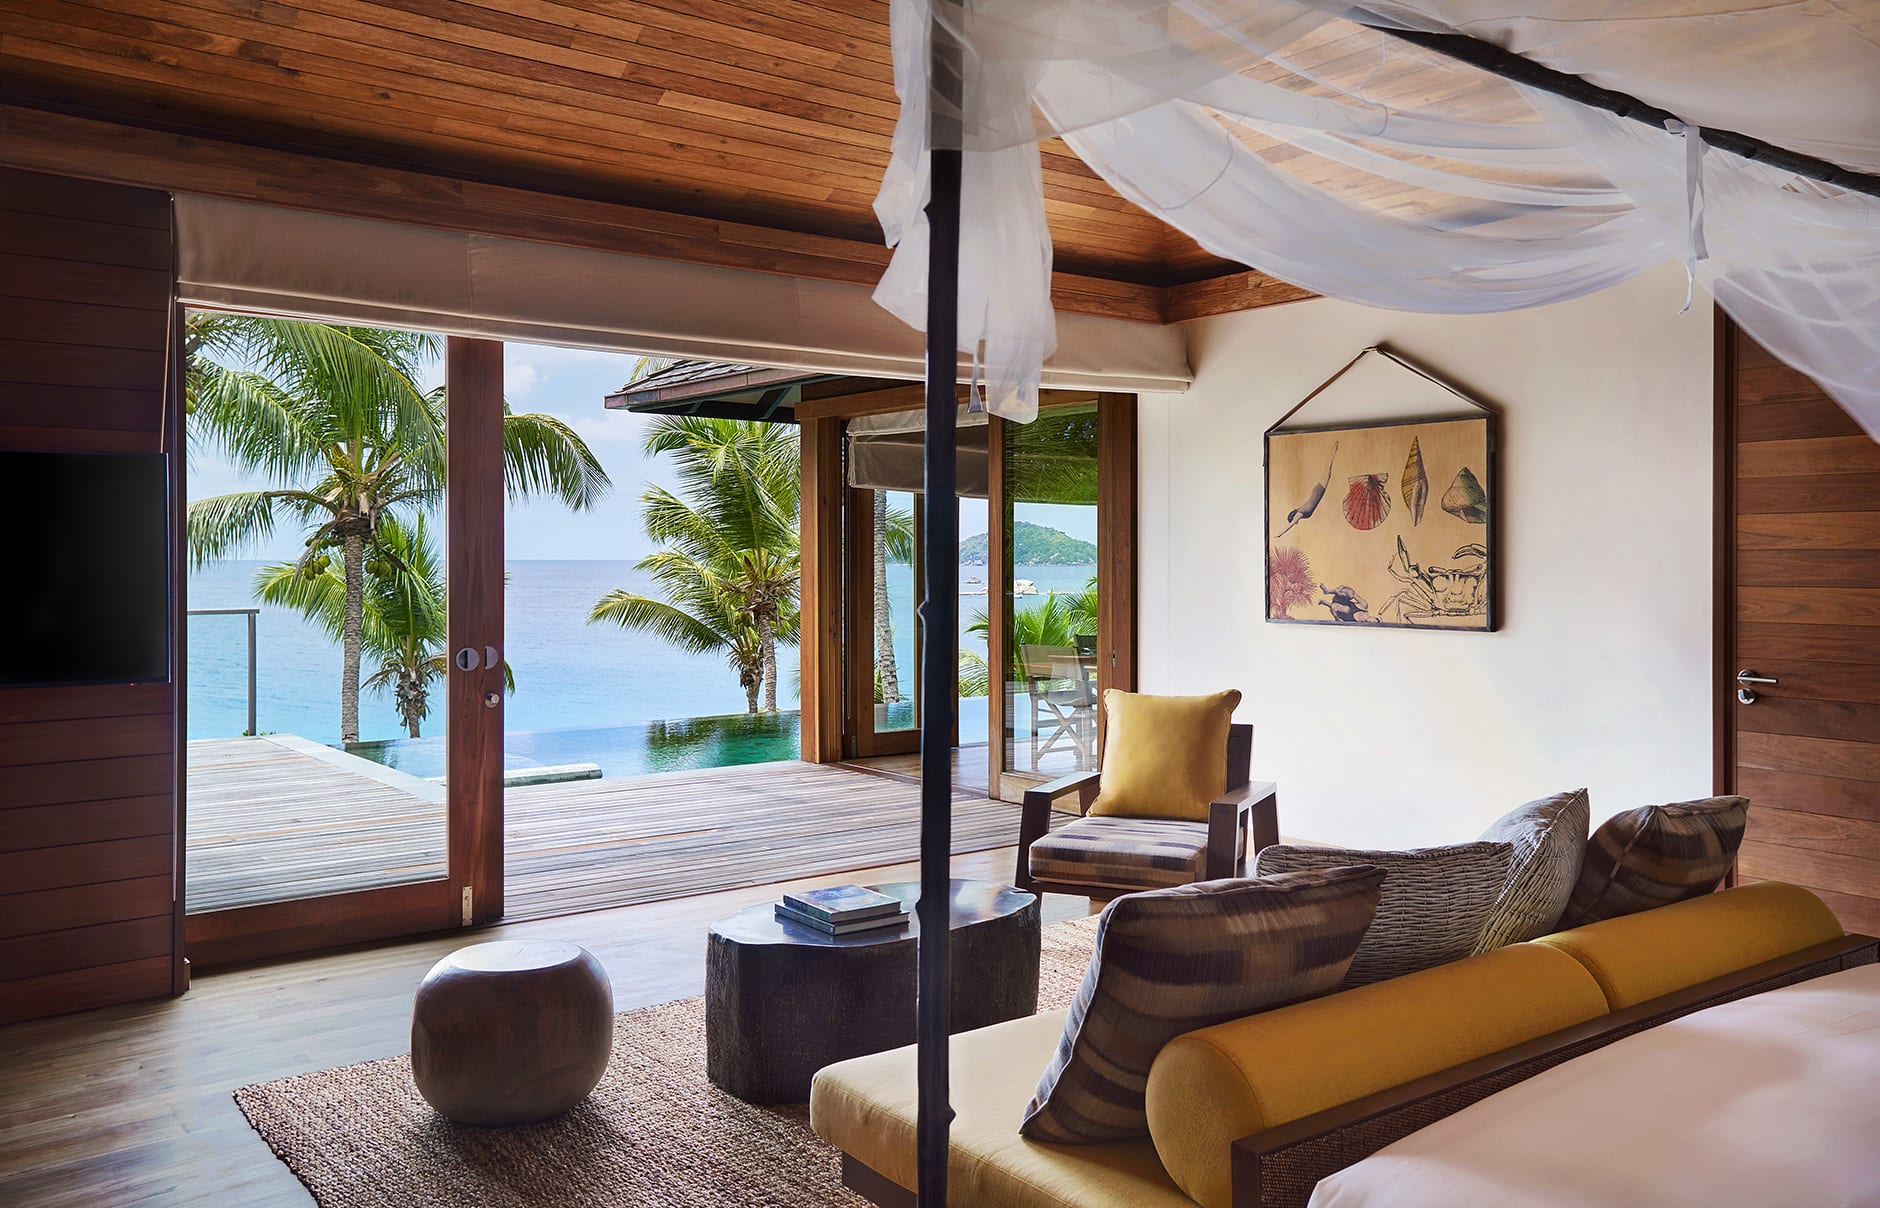 Six Senses Zil Pasyon, Seychelles. © Six Senses Hotels Resorts Spas